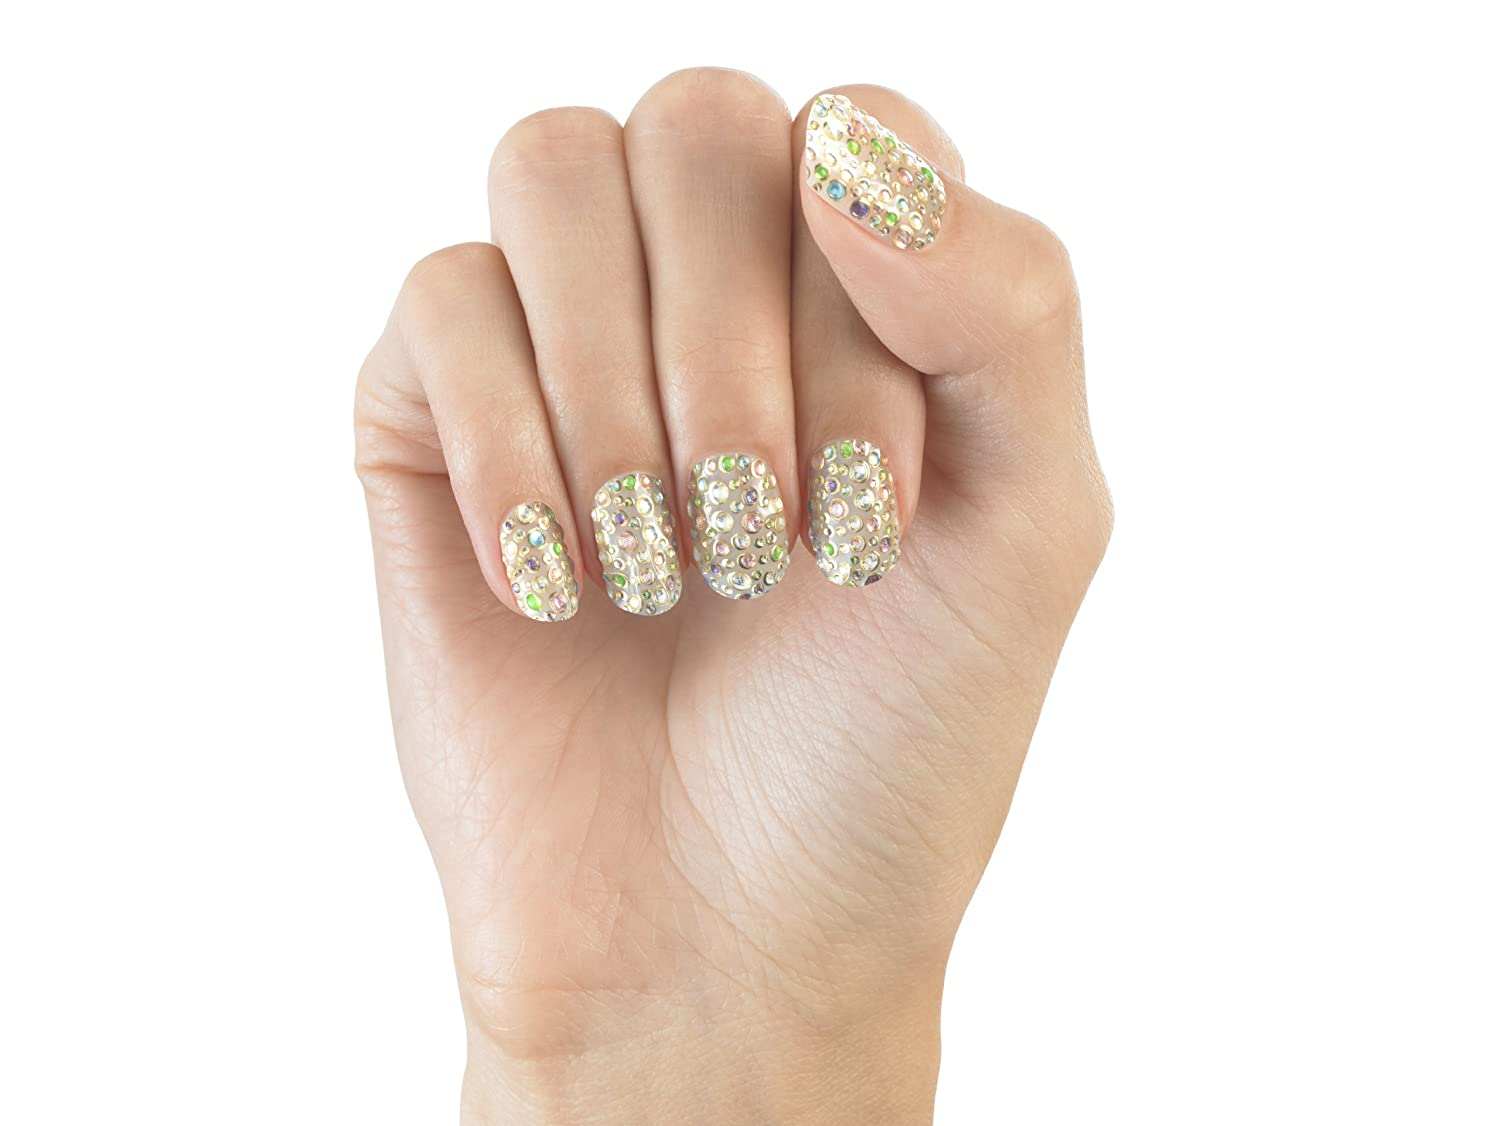 Amazon.com : Elegant Touch Envy Bling Nail Wraps, Candy Sprinkles ...